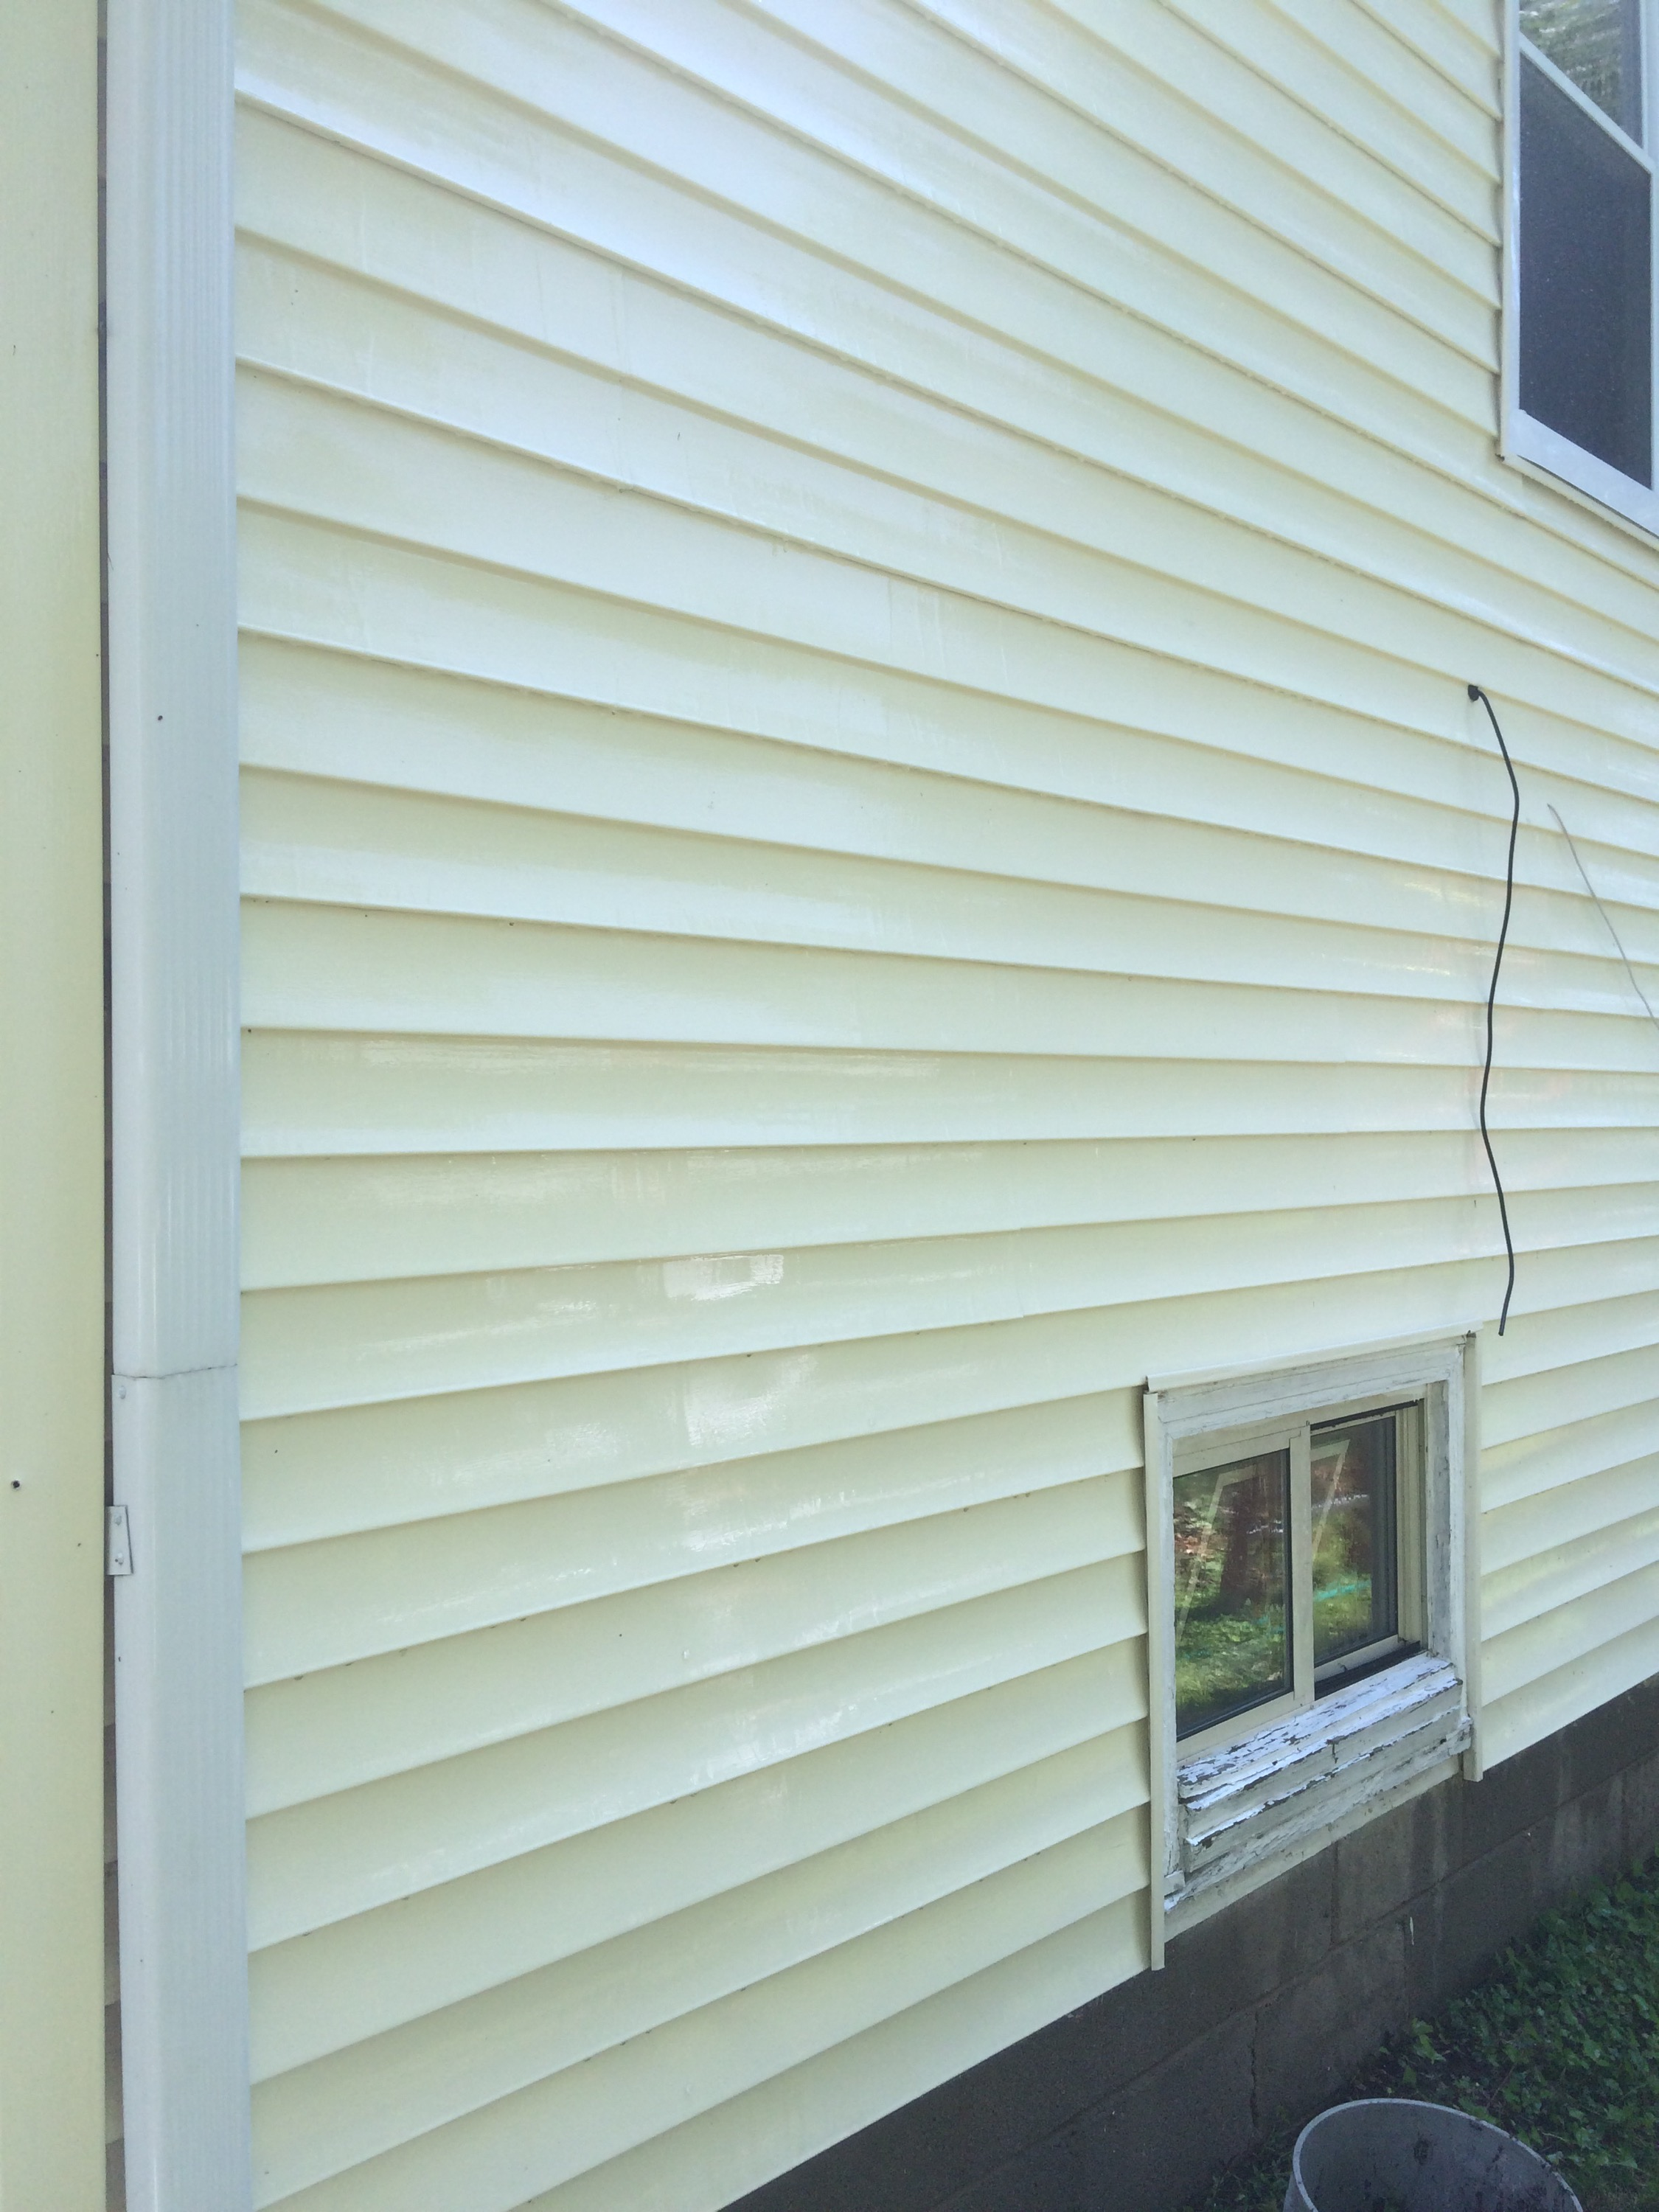 Cleaning house siding exterior 28 images vinyl siding clean scssince1986 power wash - Exterior home cleaning ...